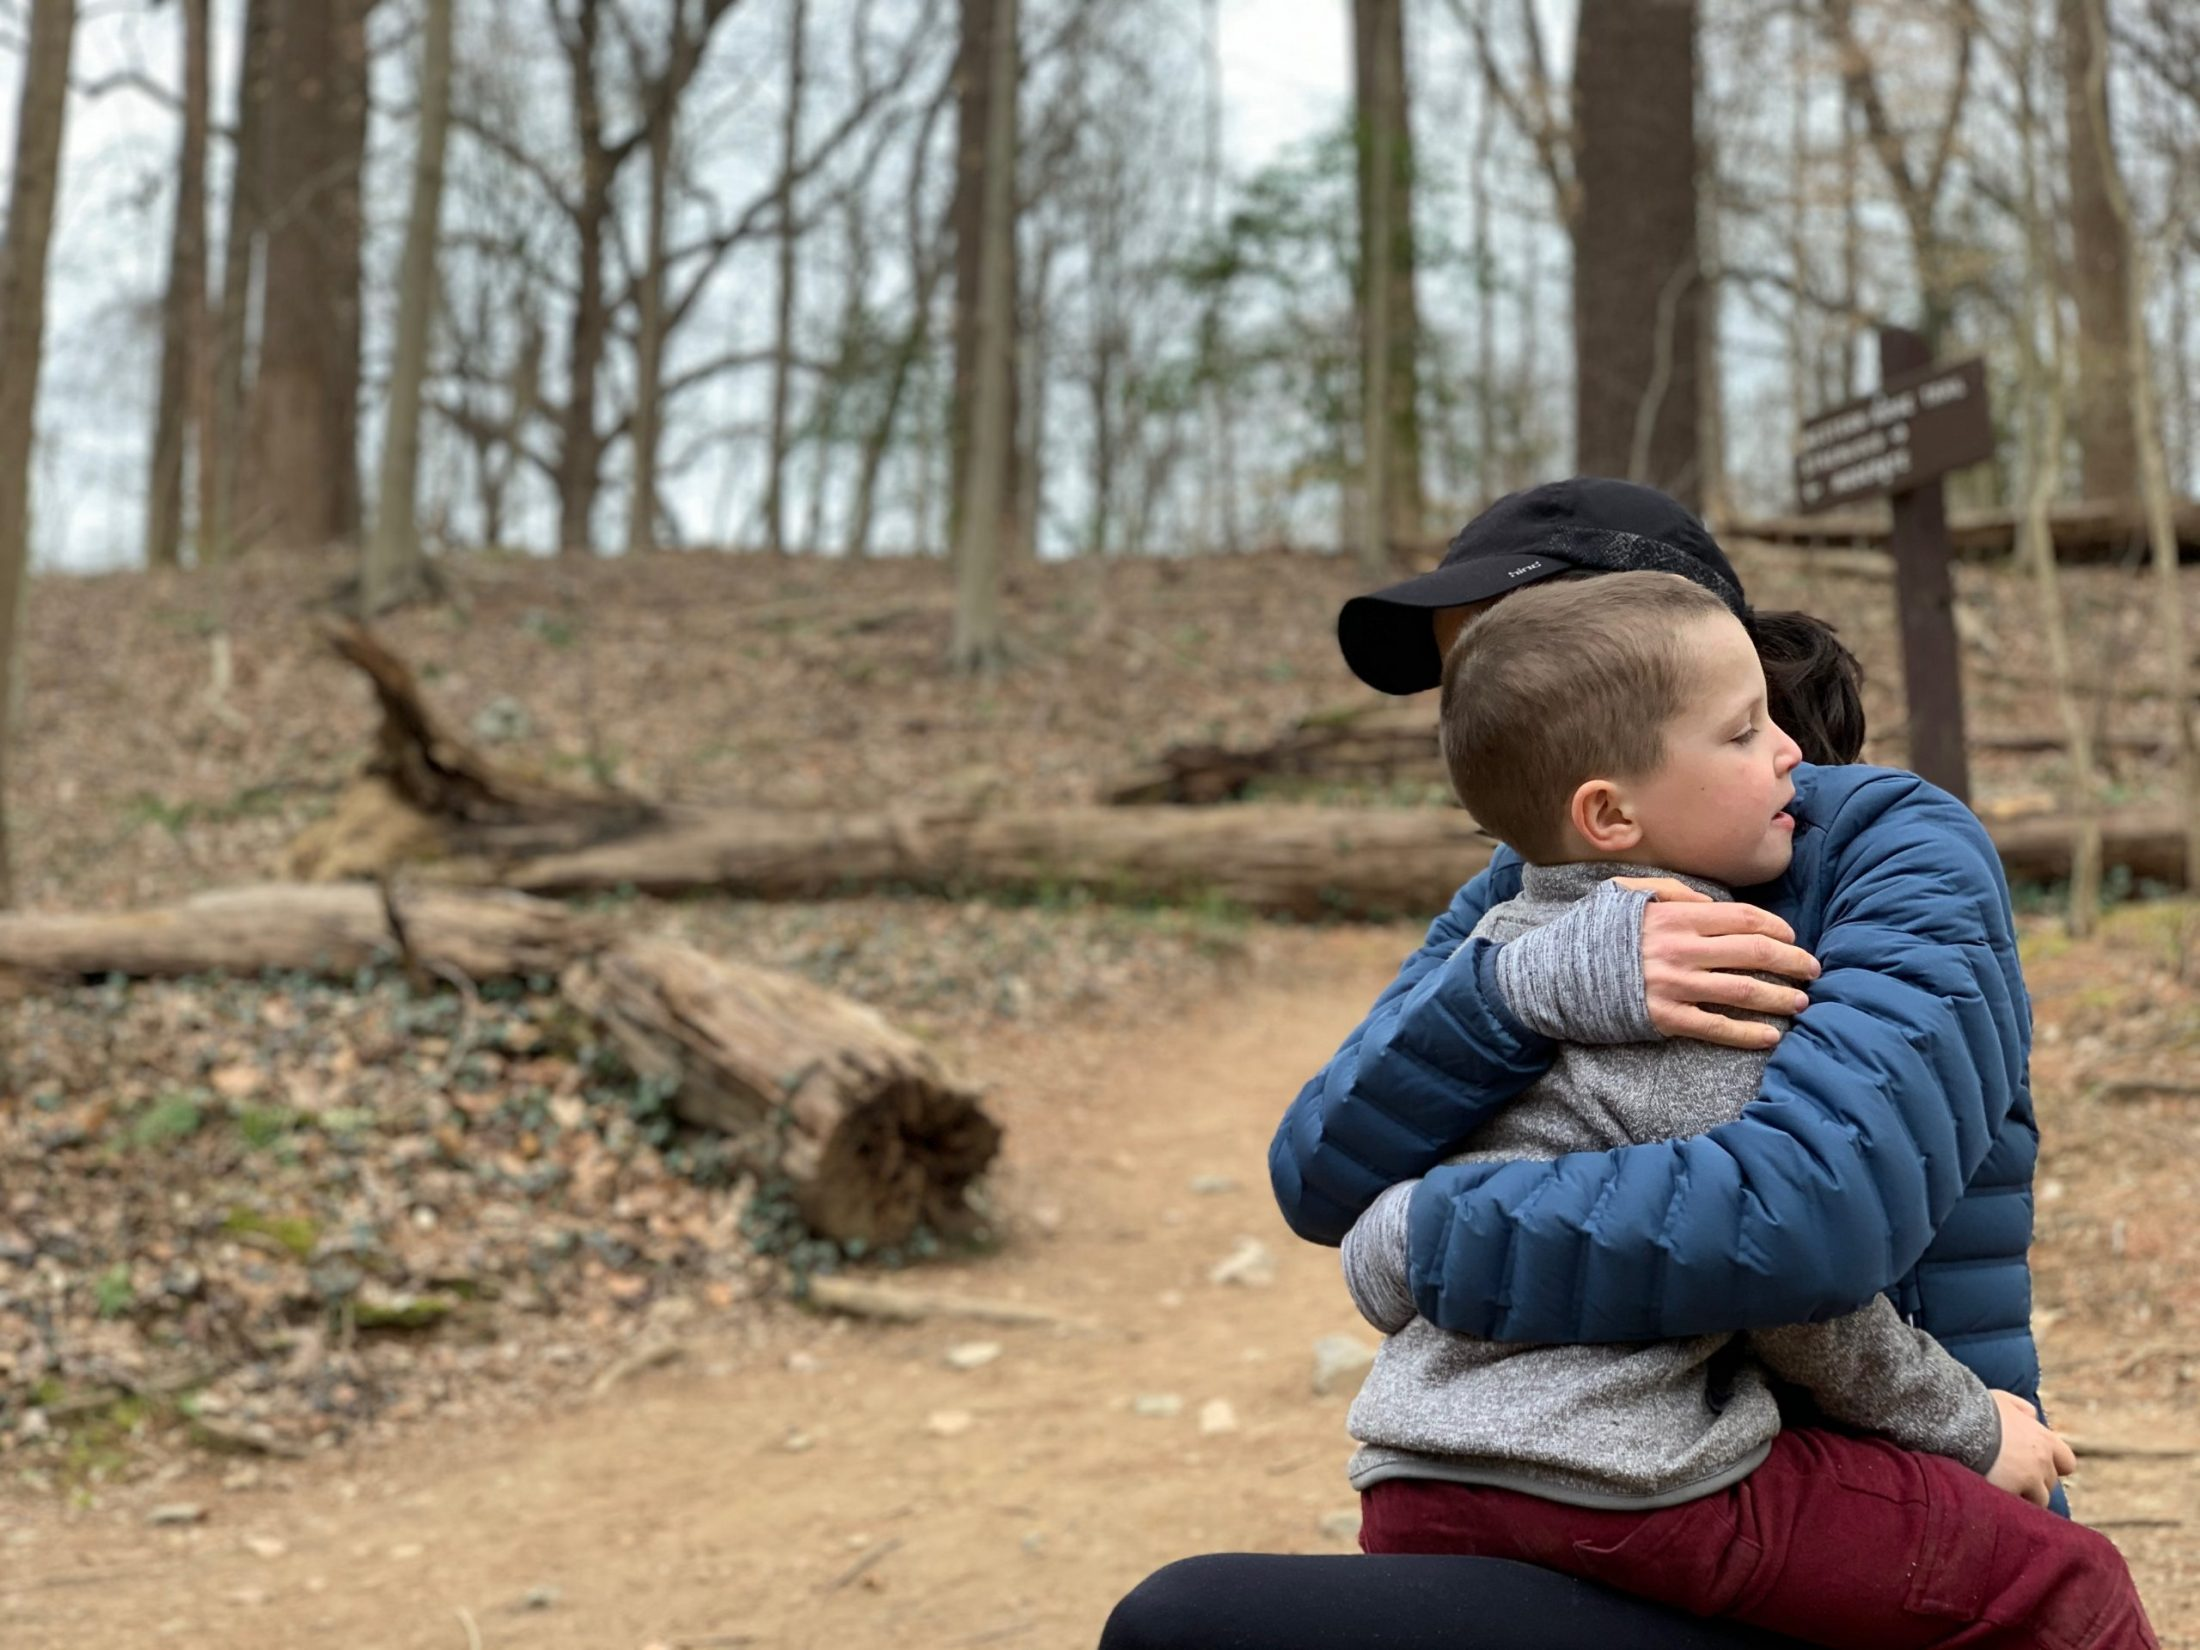 DC widow blog writer Marjorie Brimley hugs her son Tommy in the woods